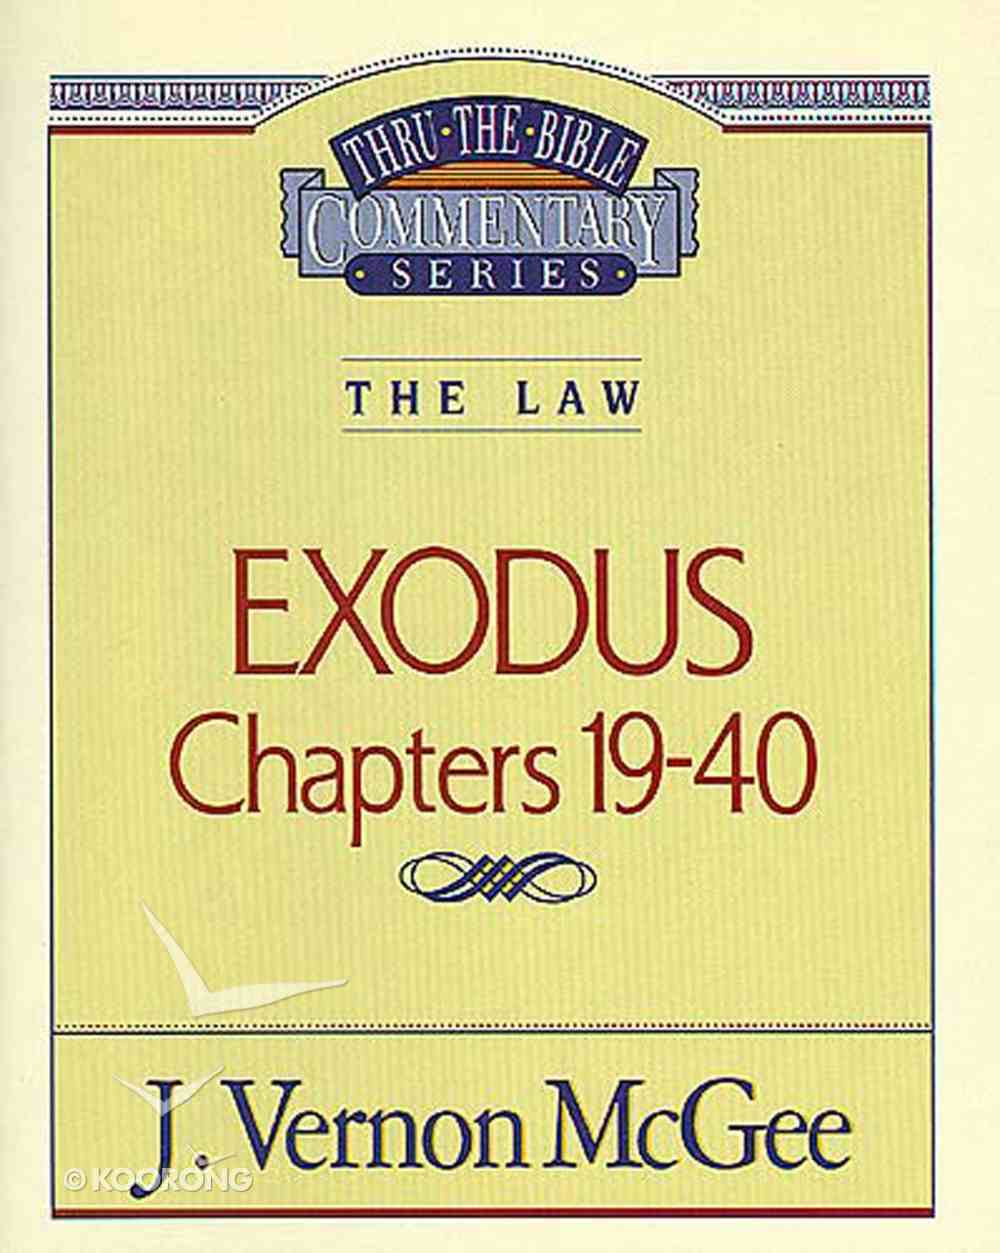 Thru the Bible OT #05: Exodus Chapters 19-40 (Volume 2) (#05 in Thru The Bible Old Testament Series) eBook